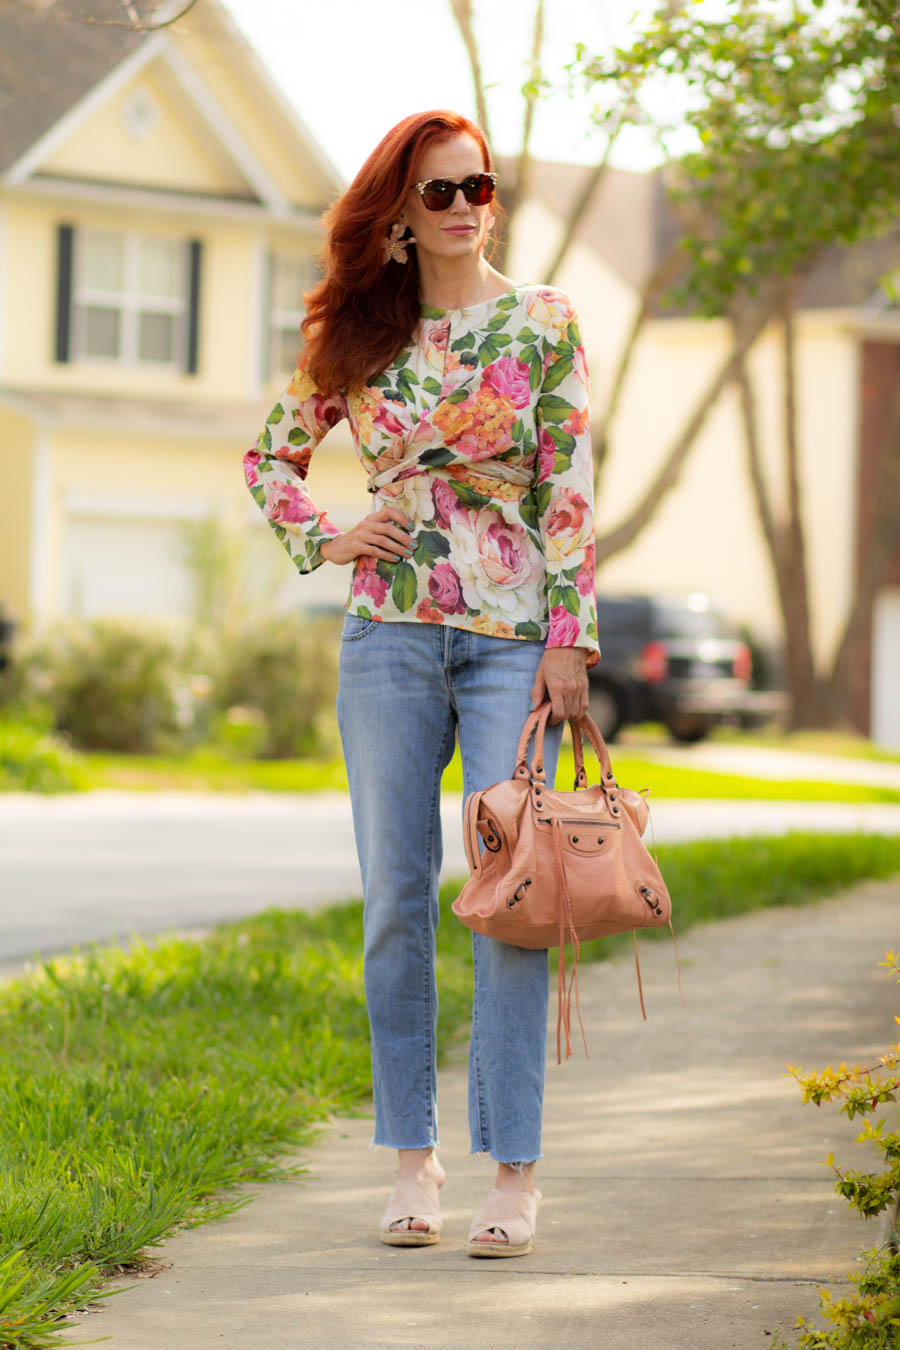 Bold floral top with light denim